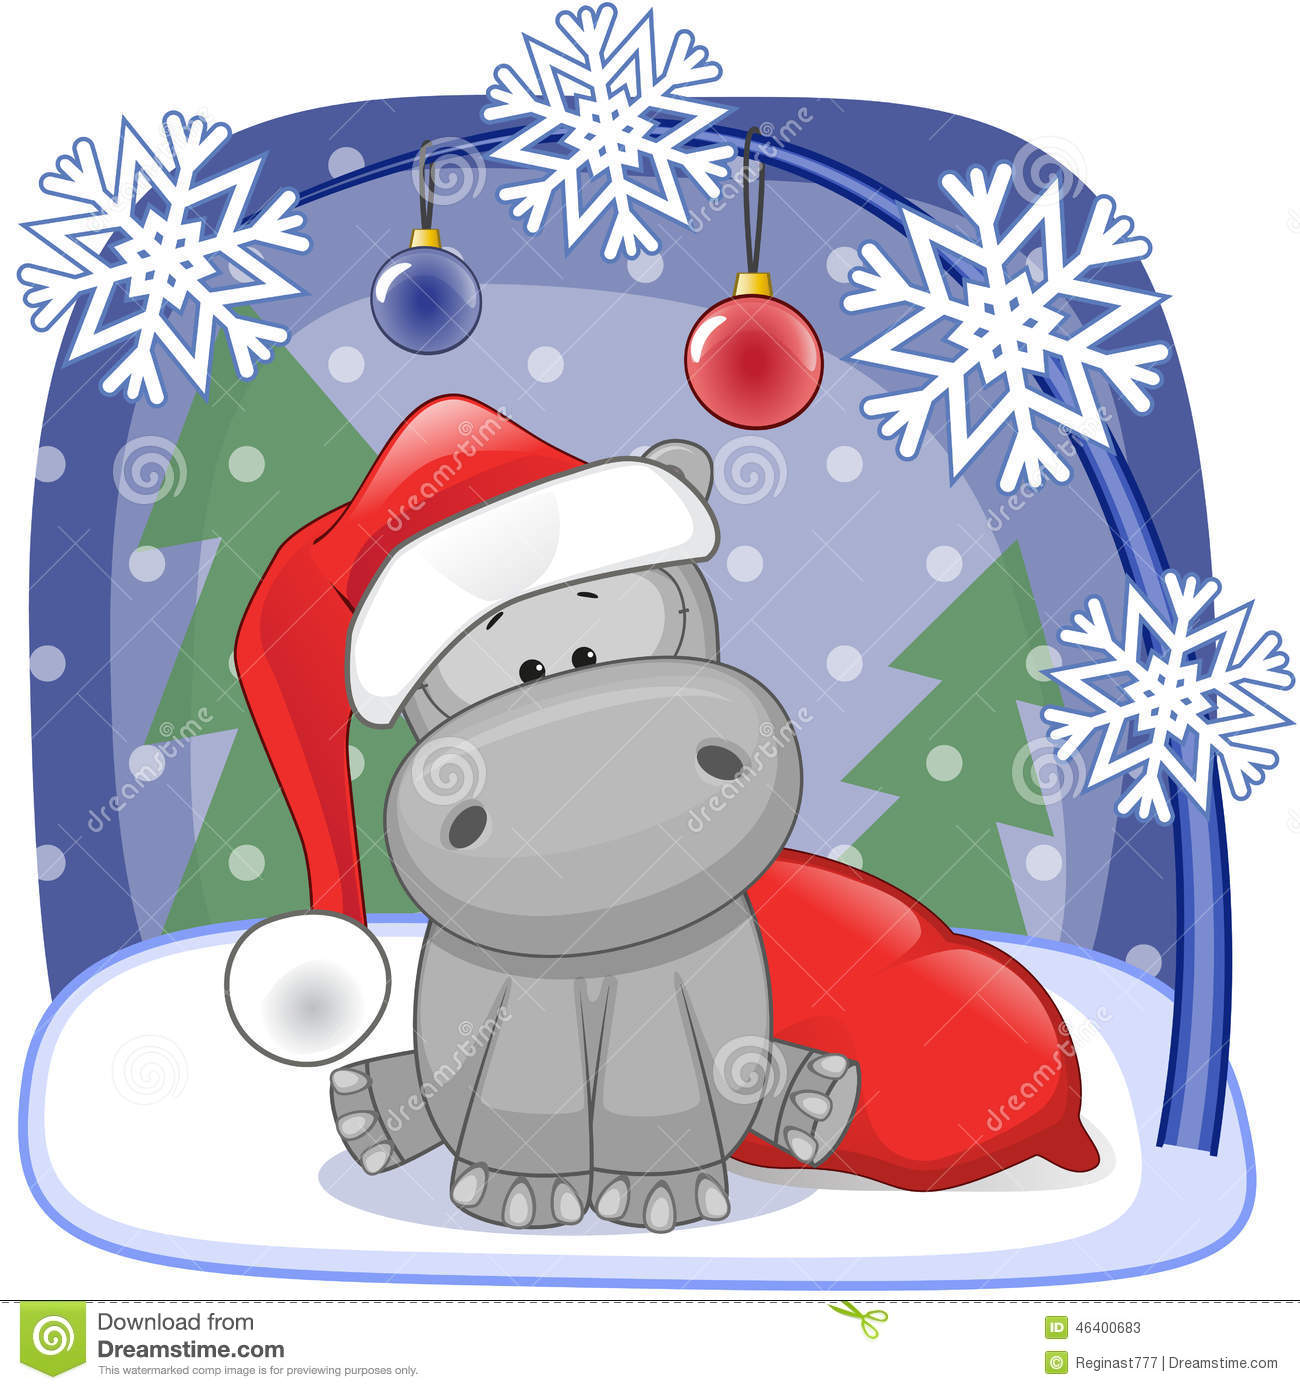 Santa Hippo stock vector. Illustration of frame, greeting - 46400683